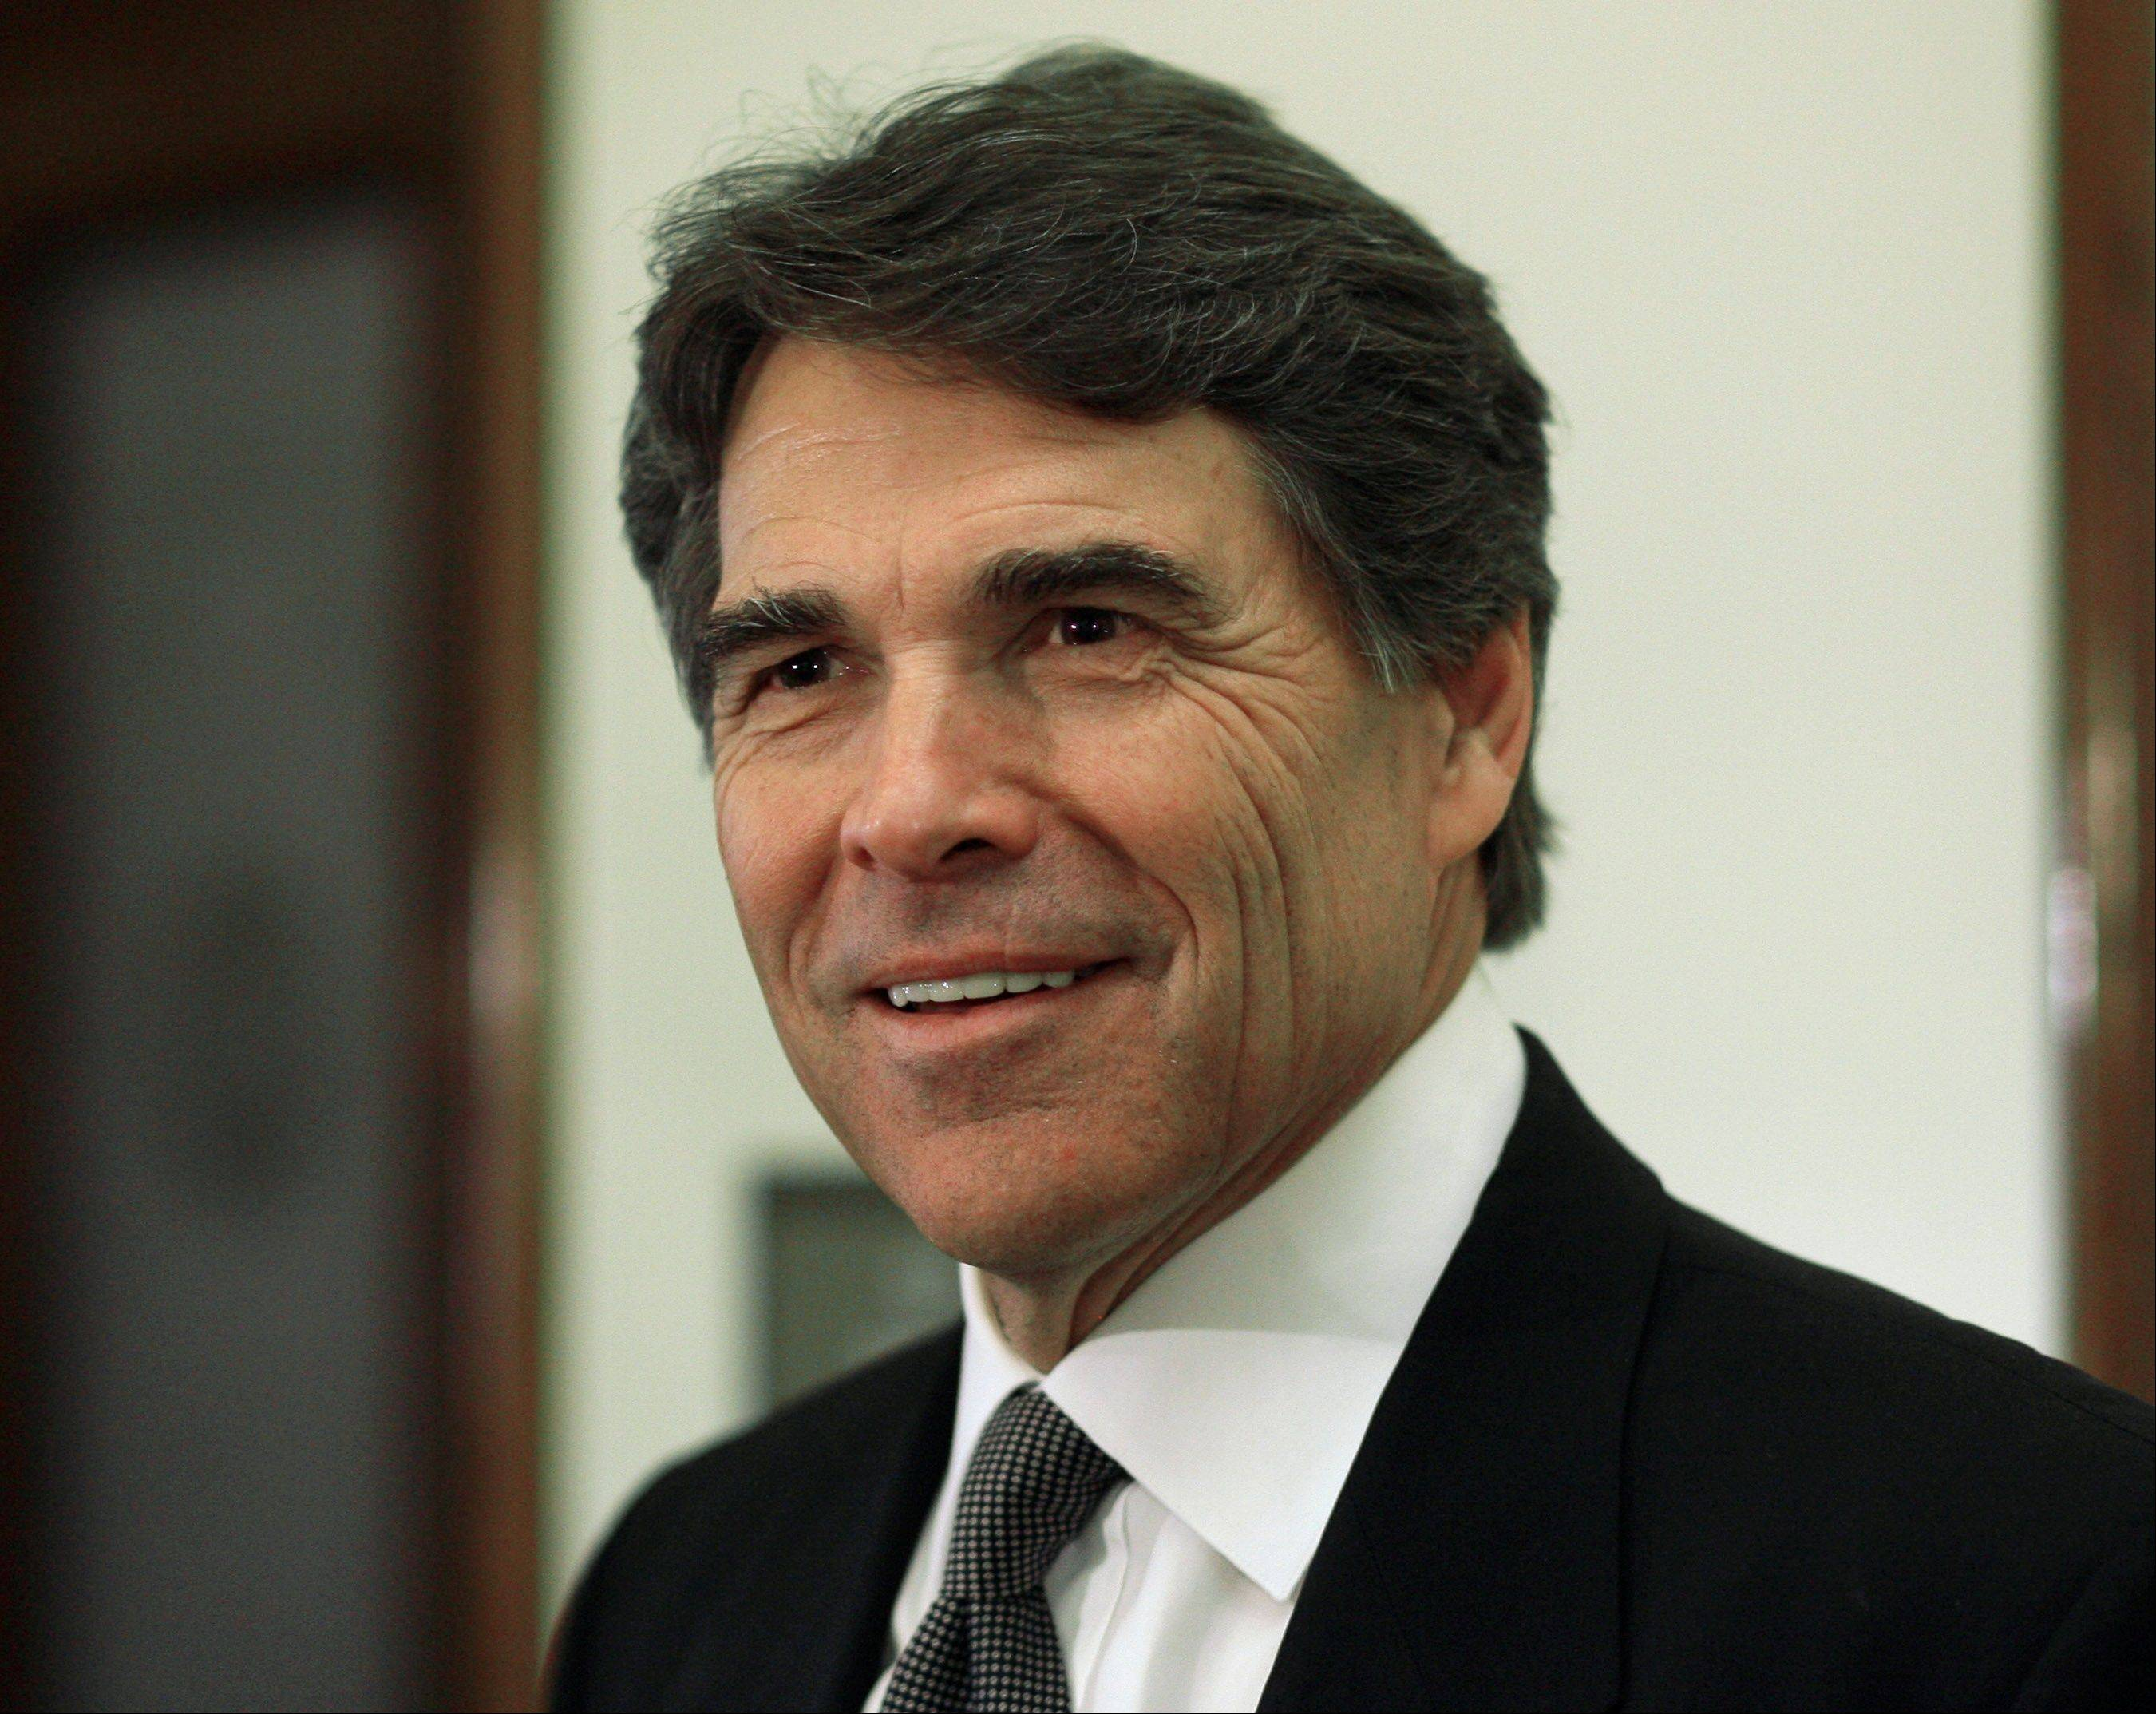 Texas Gov. Rick Perry is visiting Illinois